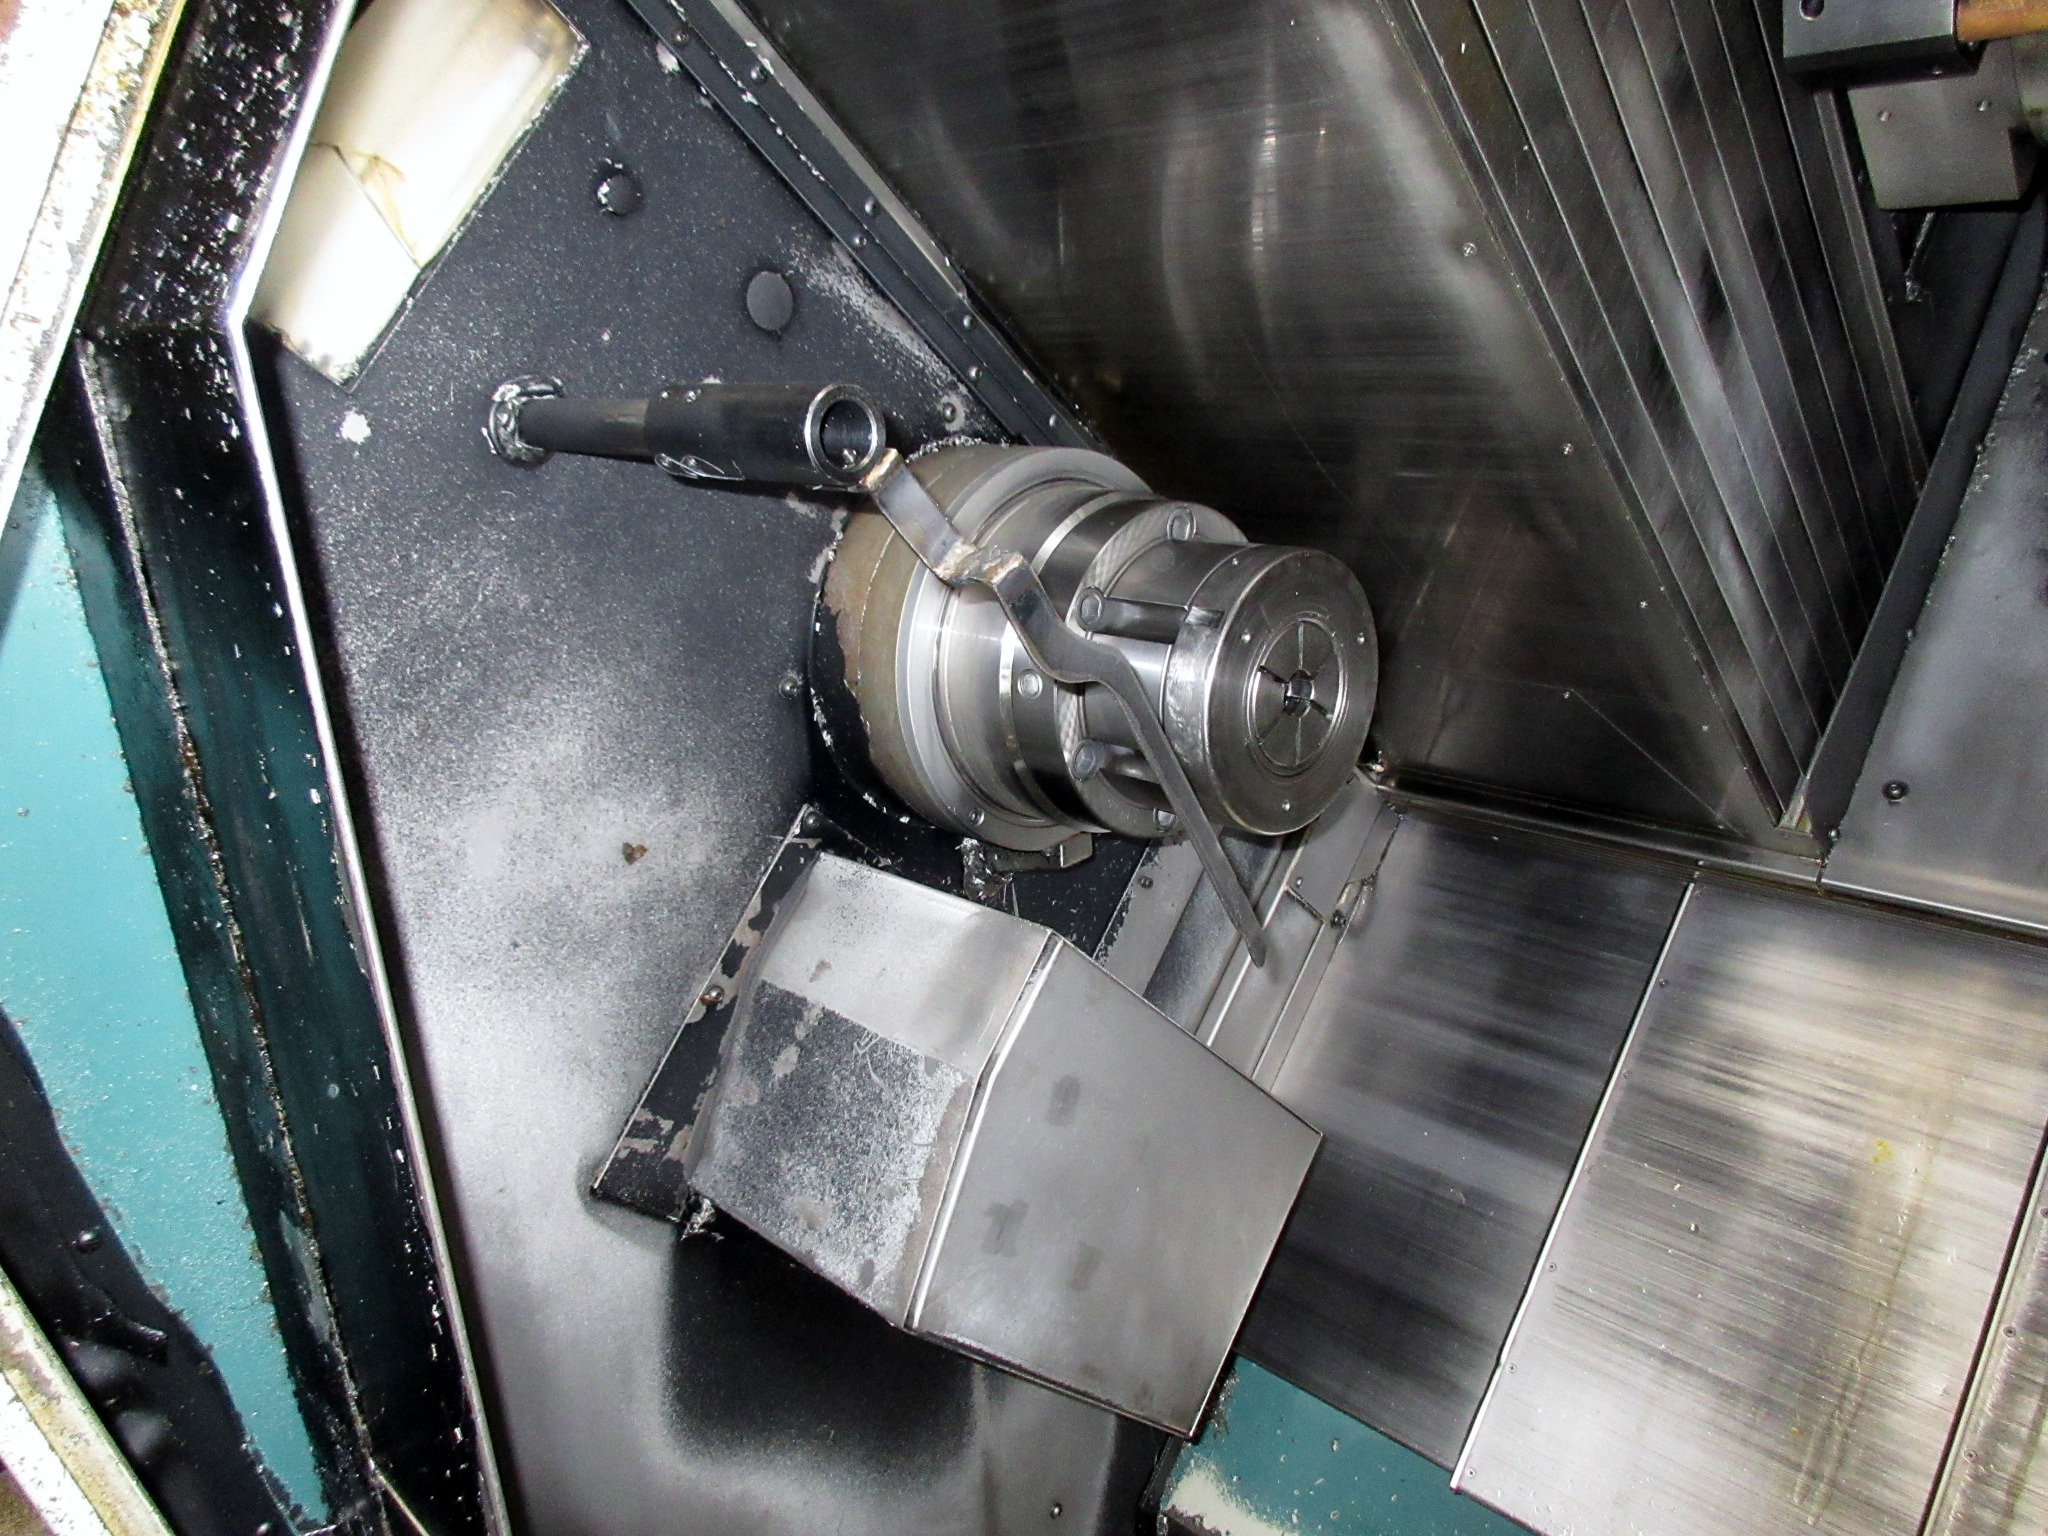 NAKAMURA TOME TW-30MM 7-AXIS CNC TWIN SPINDLE TURNING CENTER - Image 5 of 21